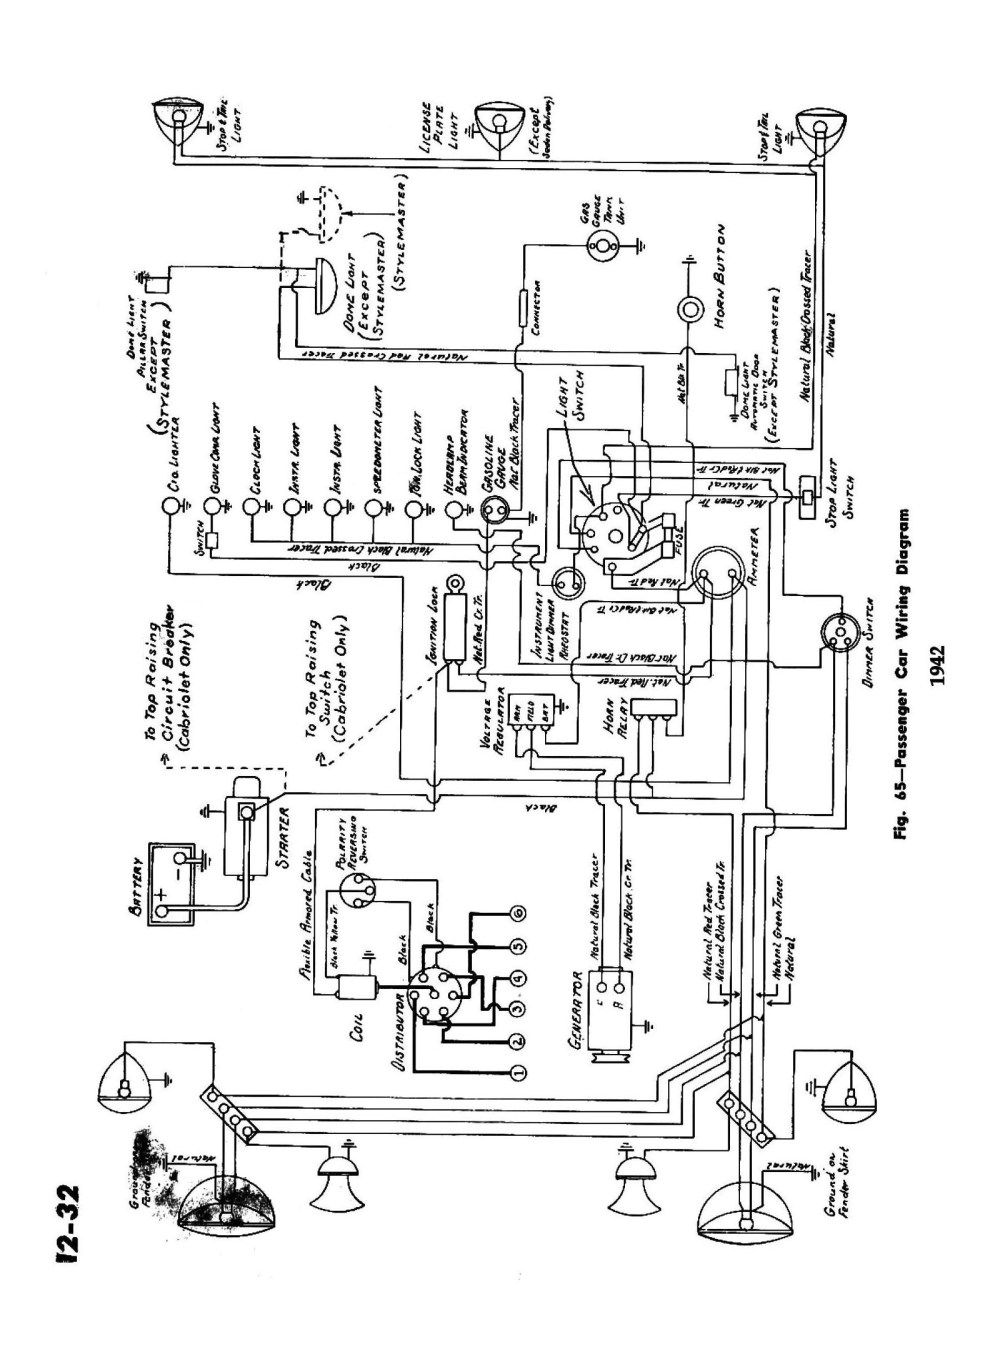 medium resolution of 1940 dodge ignition wiring simple wiring schema 1940 buick wiring diagram 1940 dodge wiring diagram